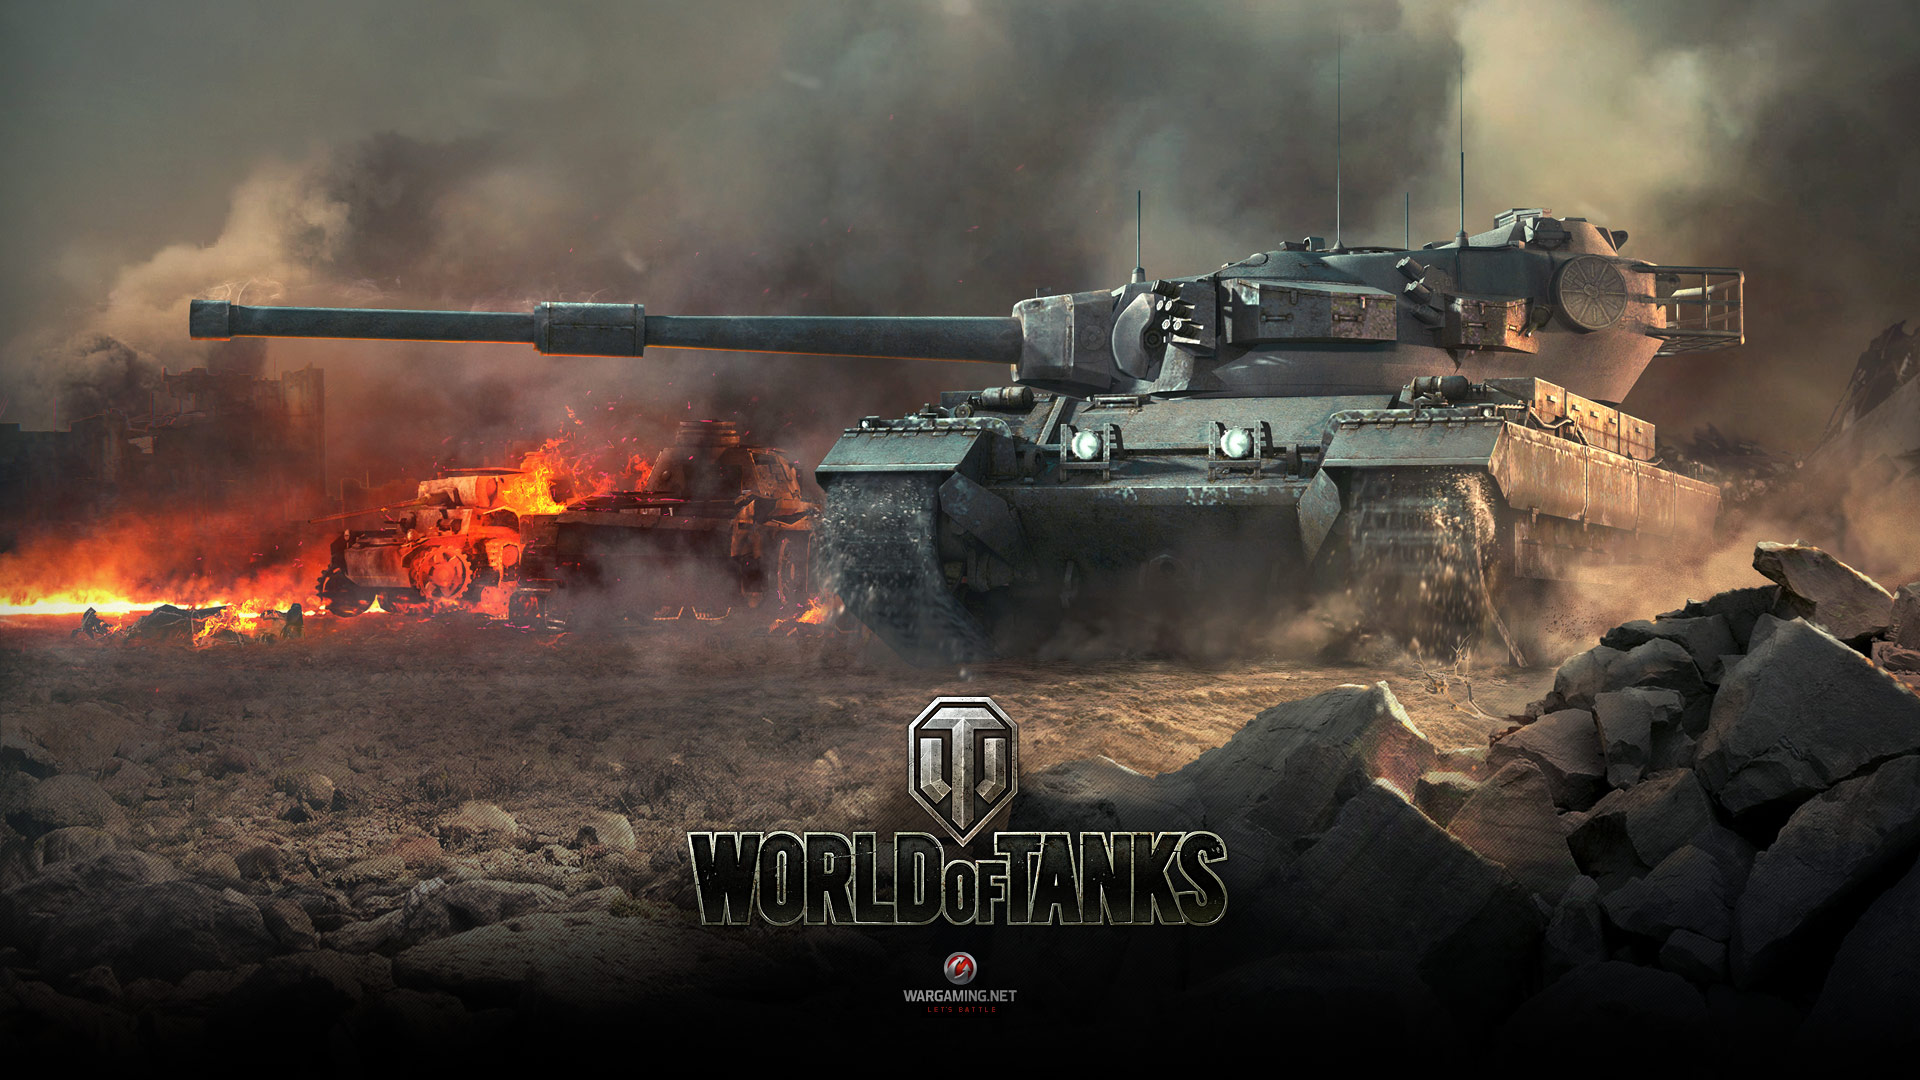 Competitive World of Tanks just got even better – ESL integrates Wargaming.net Battle API